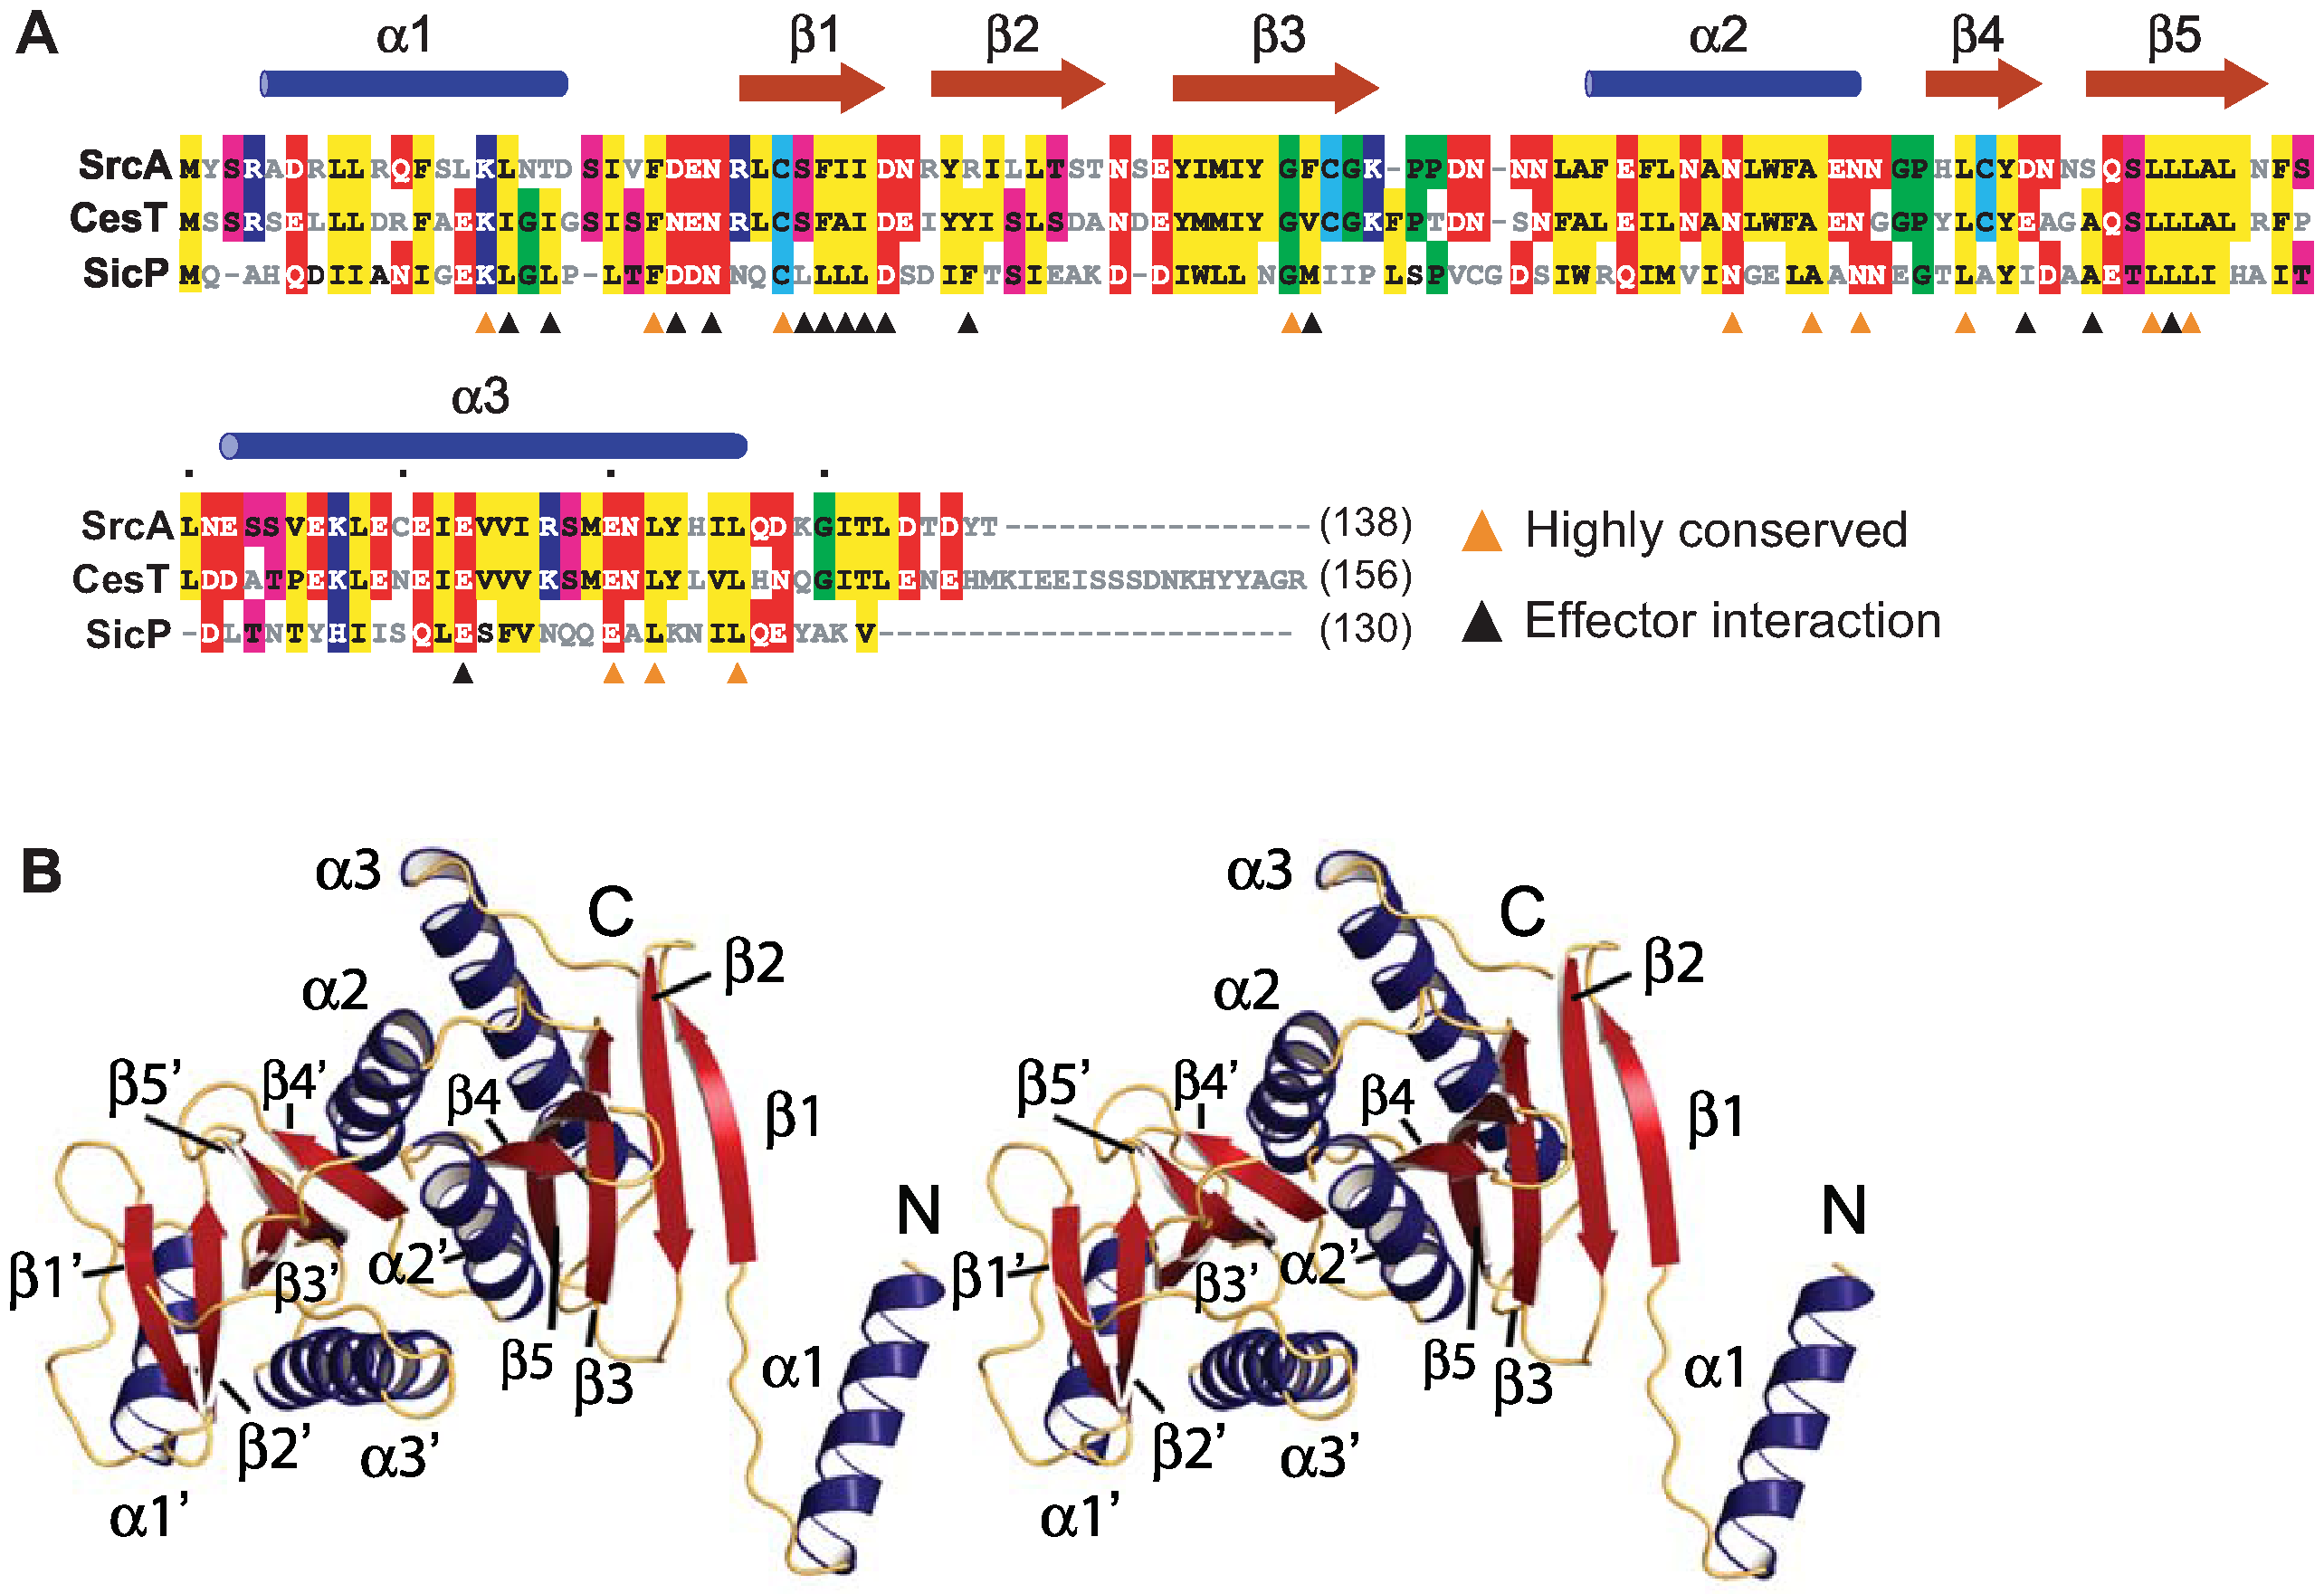 Structural characterization of SrcA.